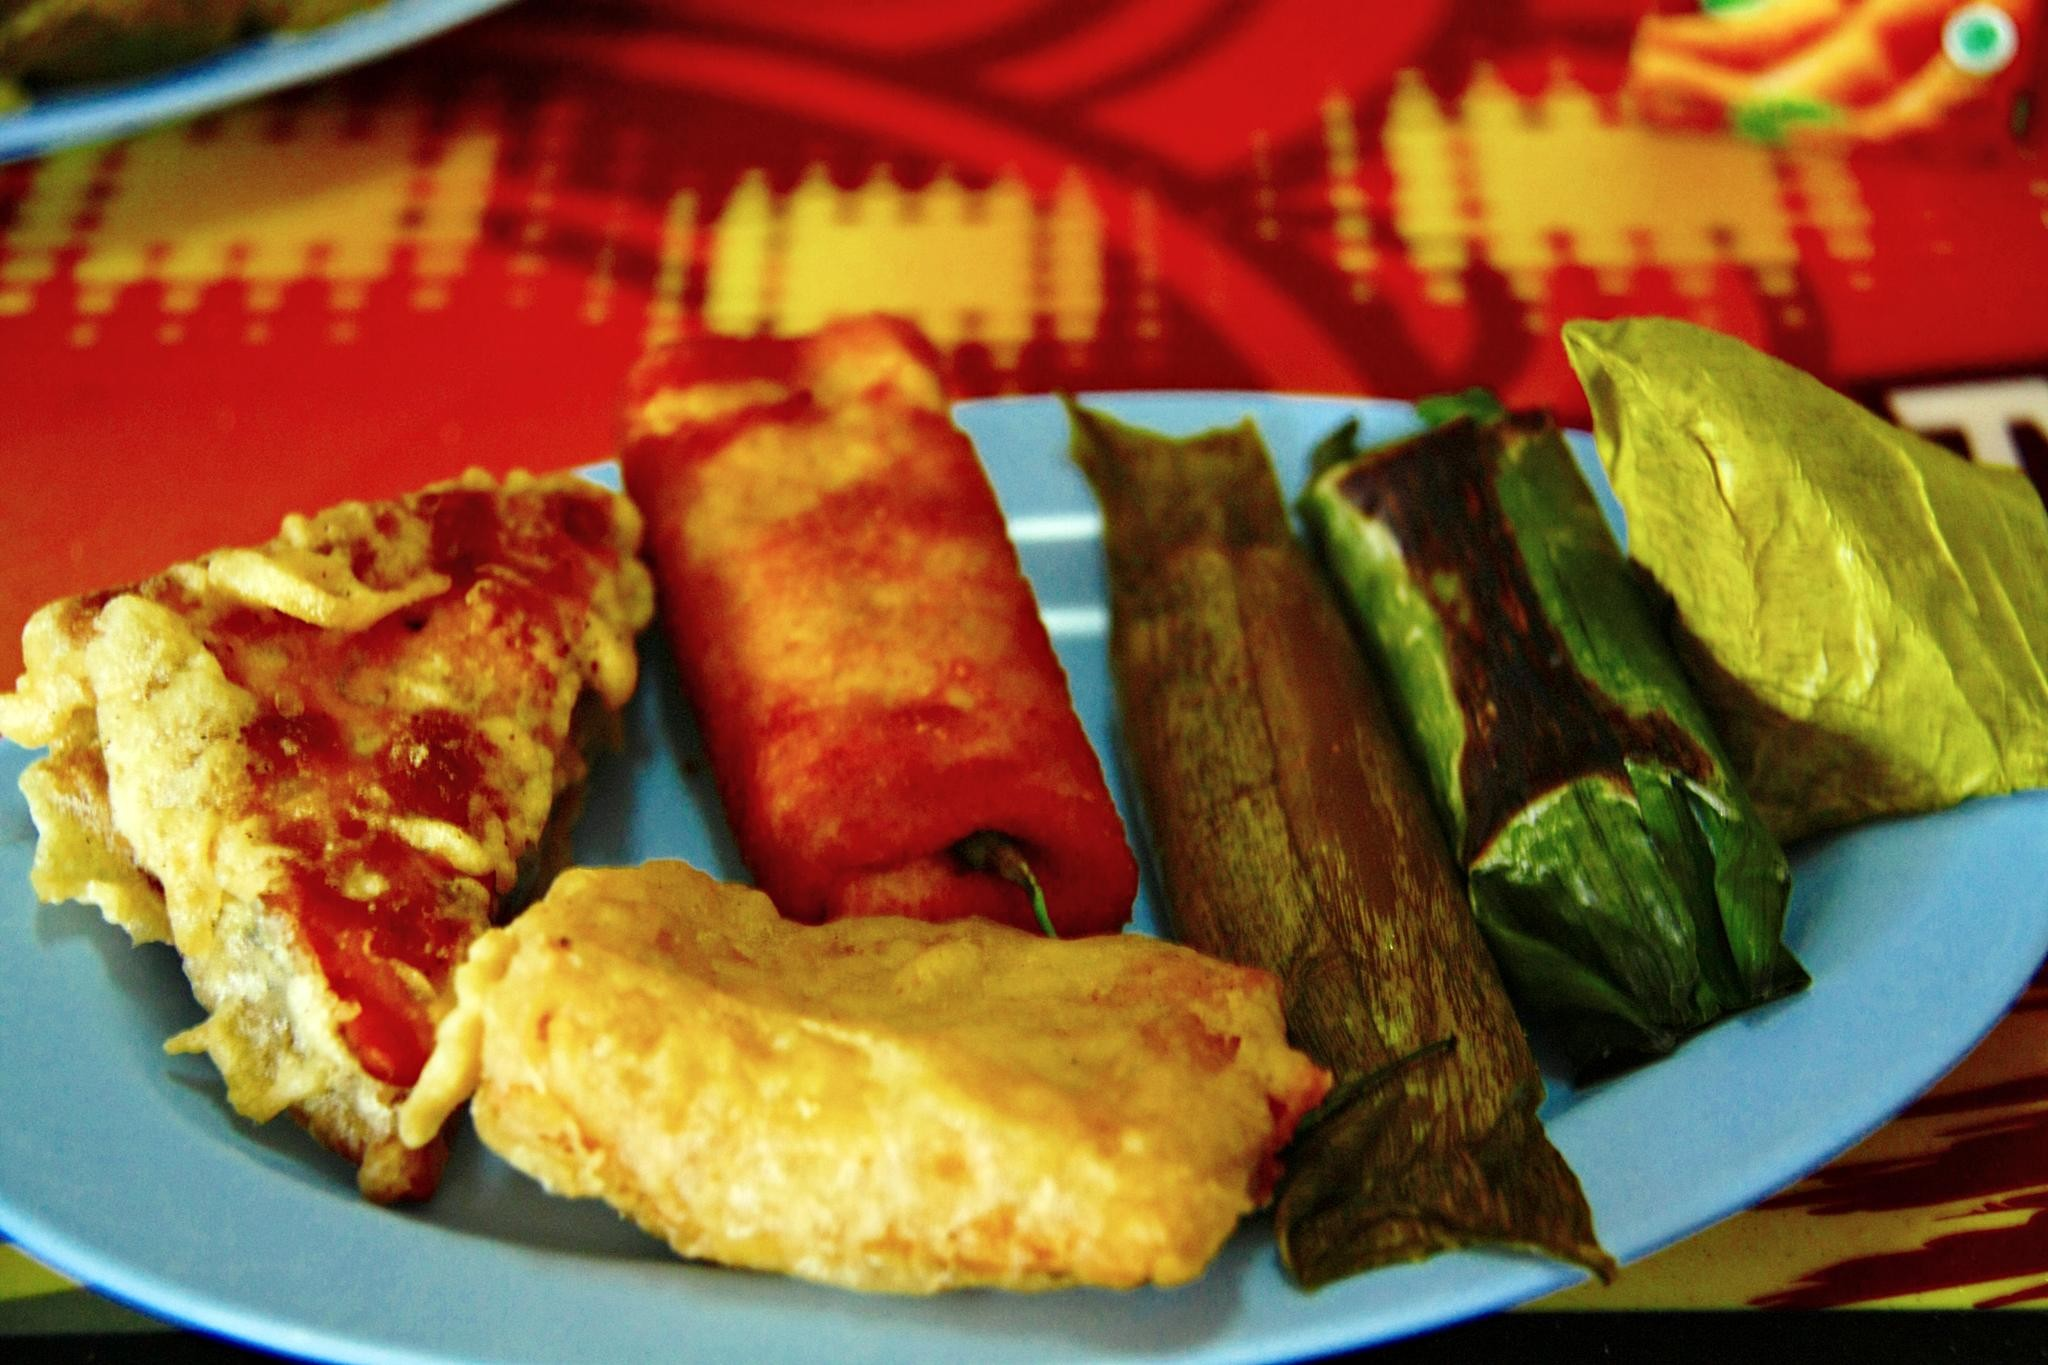 Indonesian snacks such as tahu isi pisang goreng risoles timpan lemper and kue pisang author fitri agung upload Midori 2010